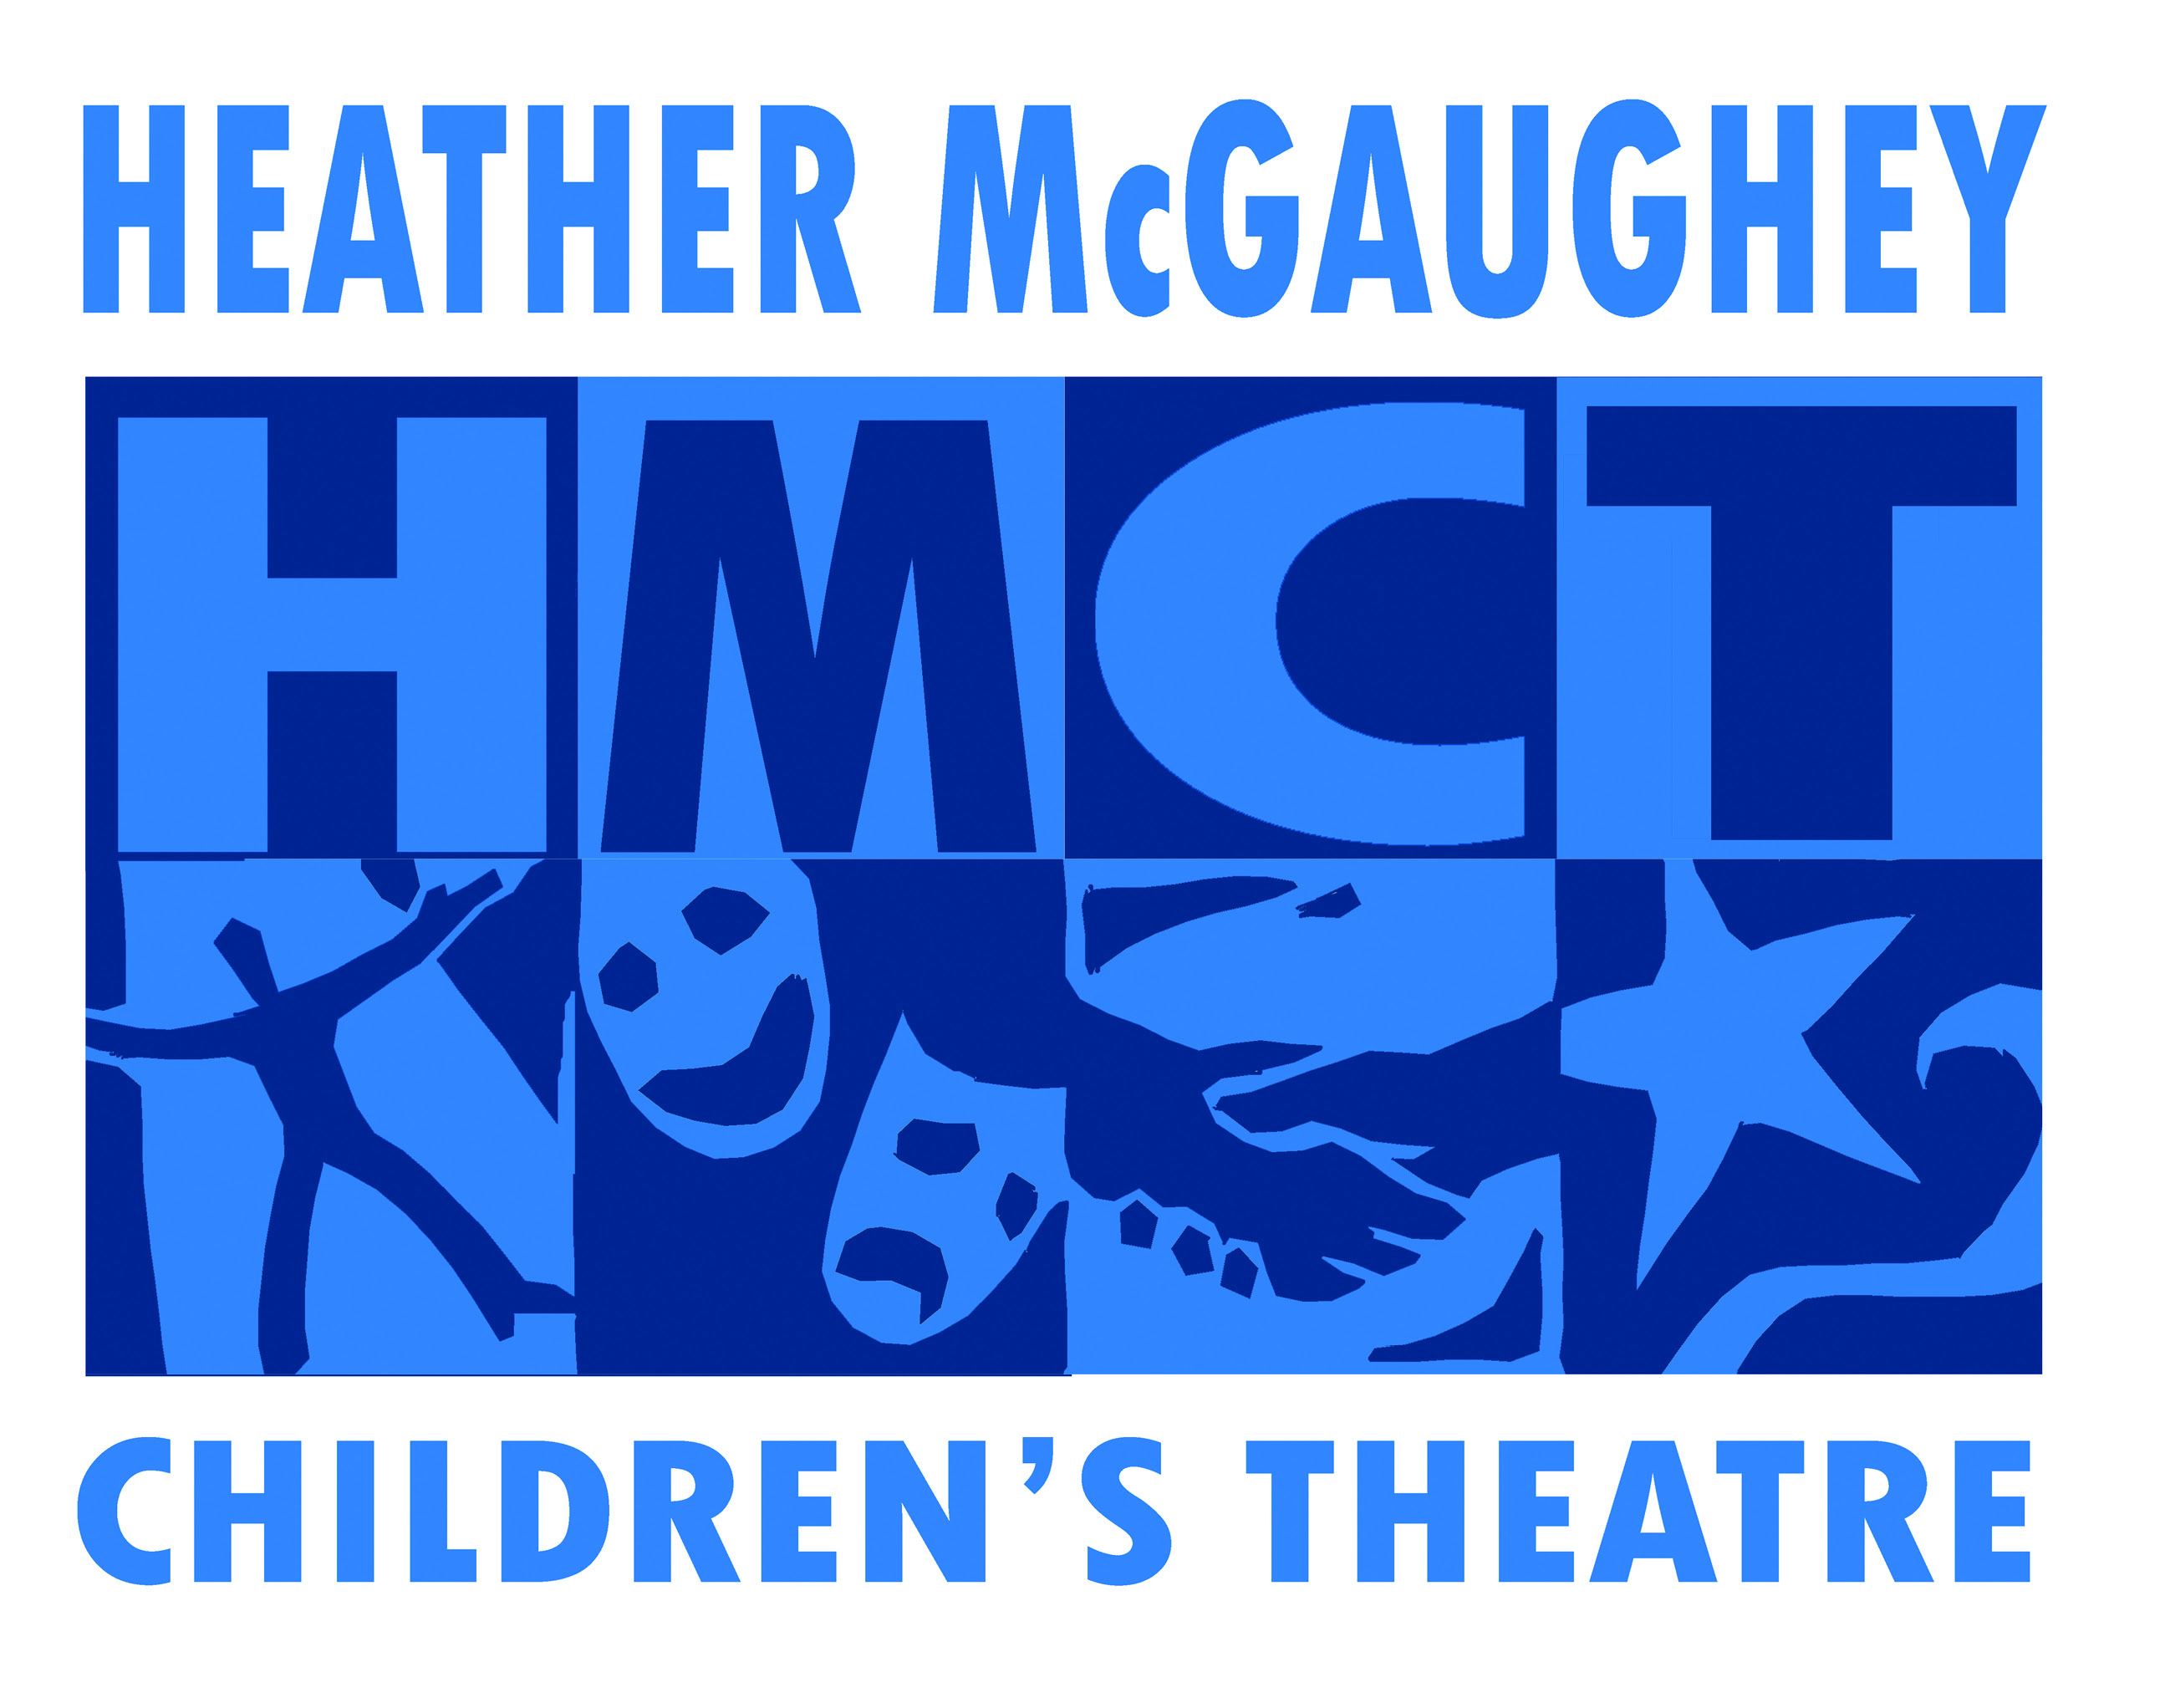 Heather McGaughy Children's Theater Logo